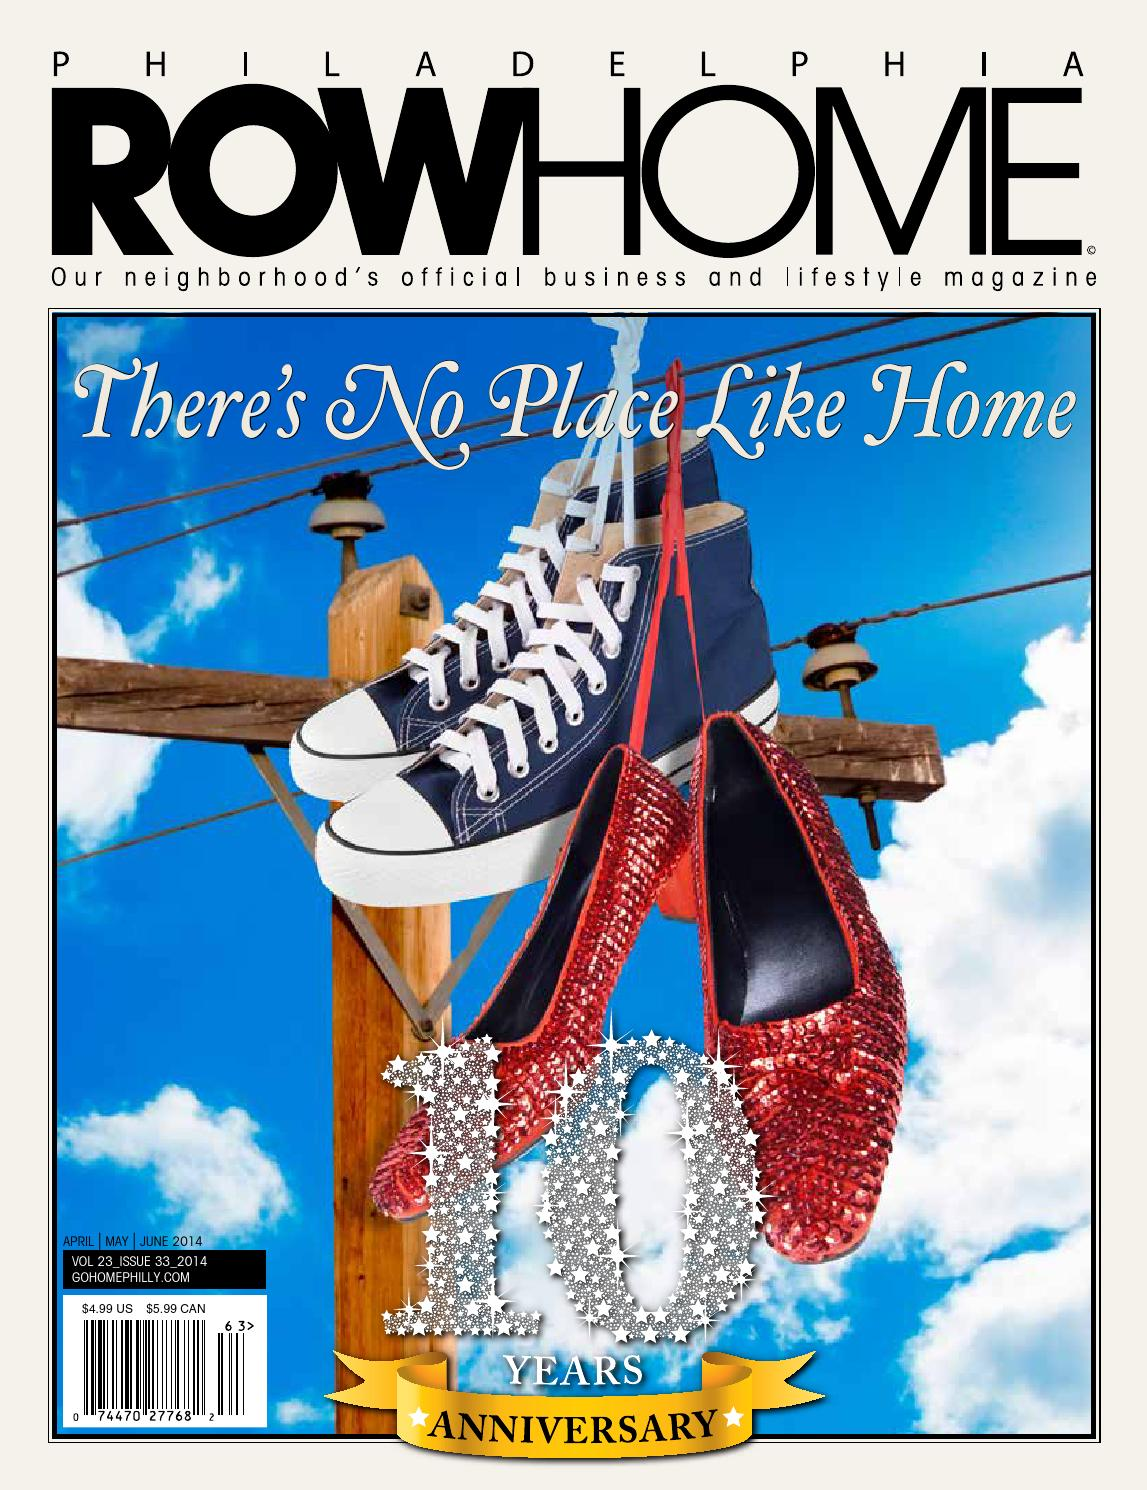 10 Year Anniversary- There's No Place Like ROWHOME! by Philadelphia